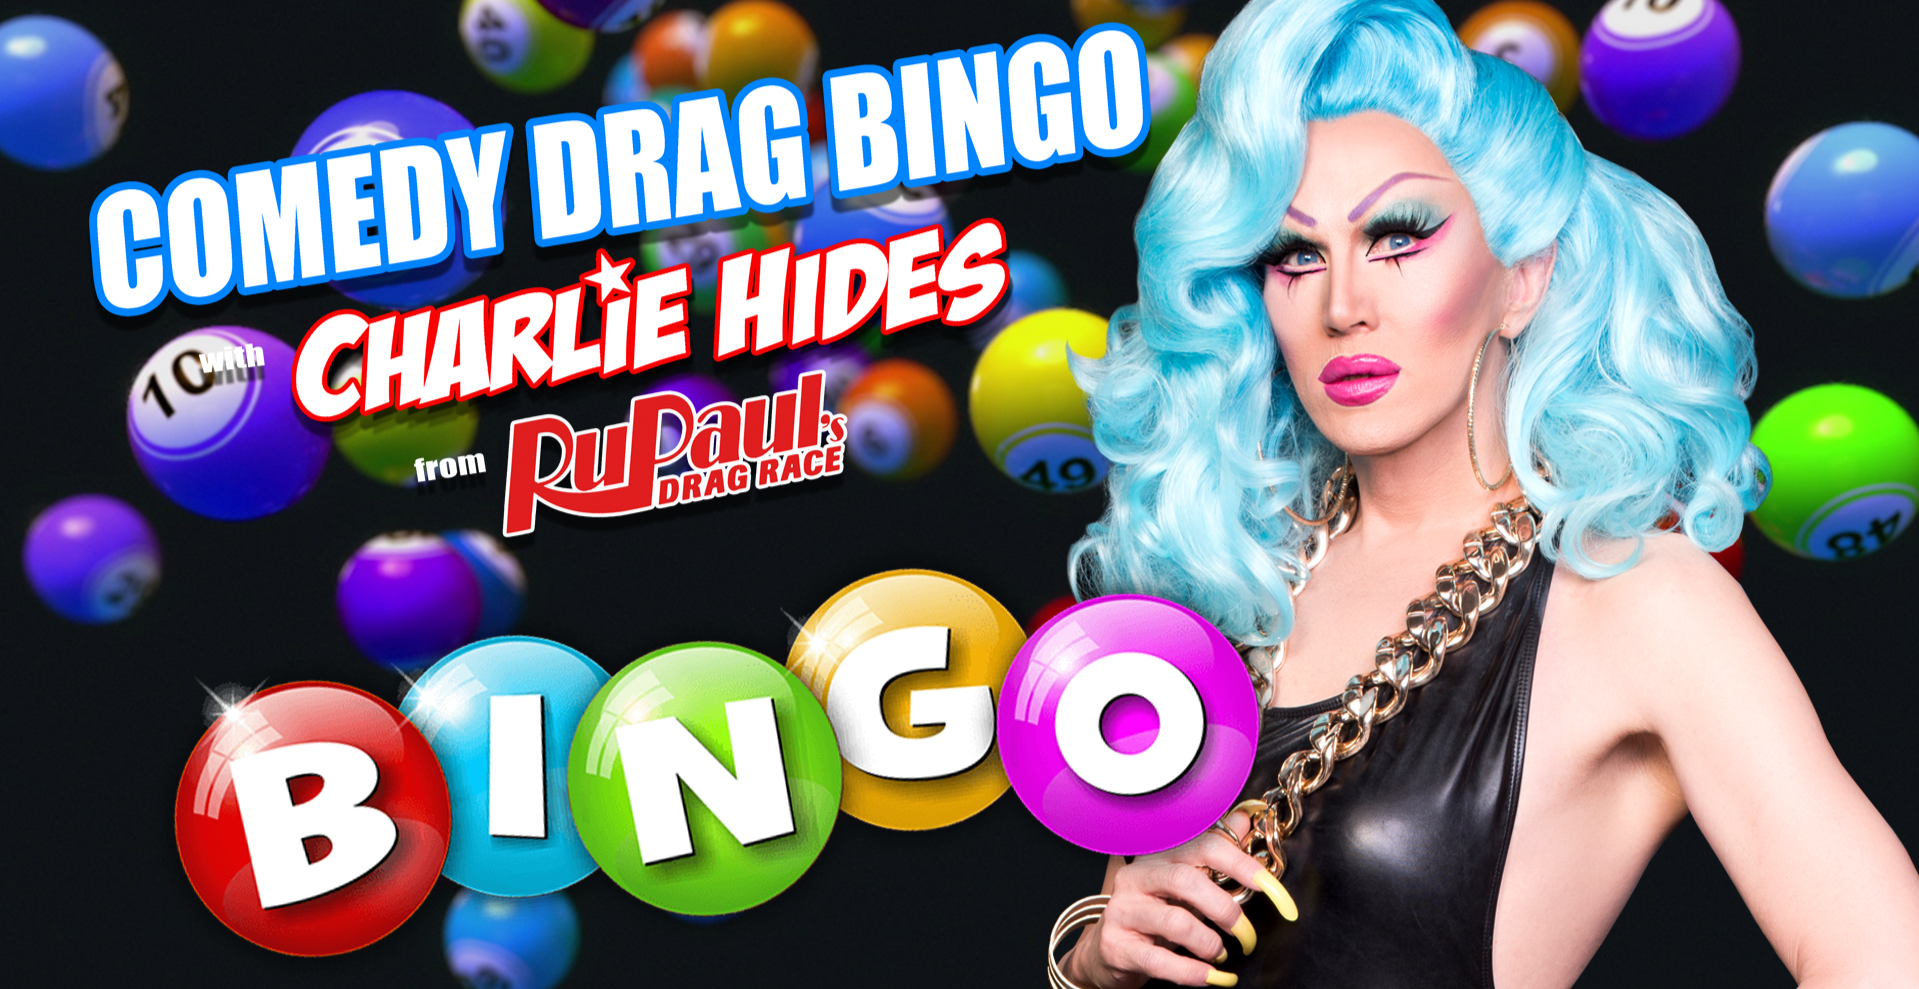 Comedy Drag Bingo with Charlie Hides from Ru Paul's Drag Race in support of World AIDS Day